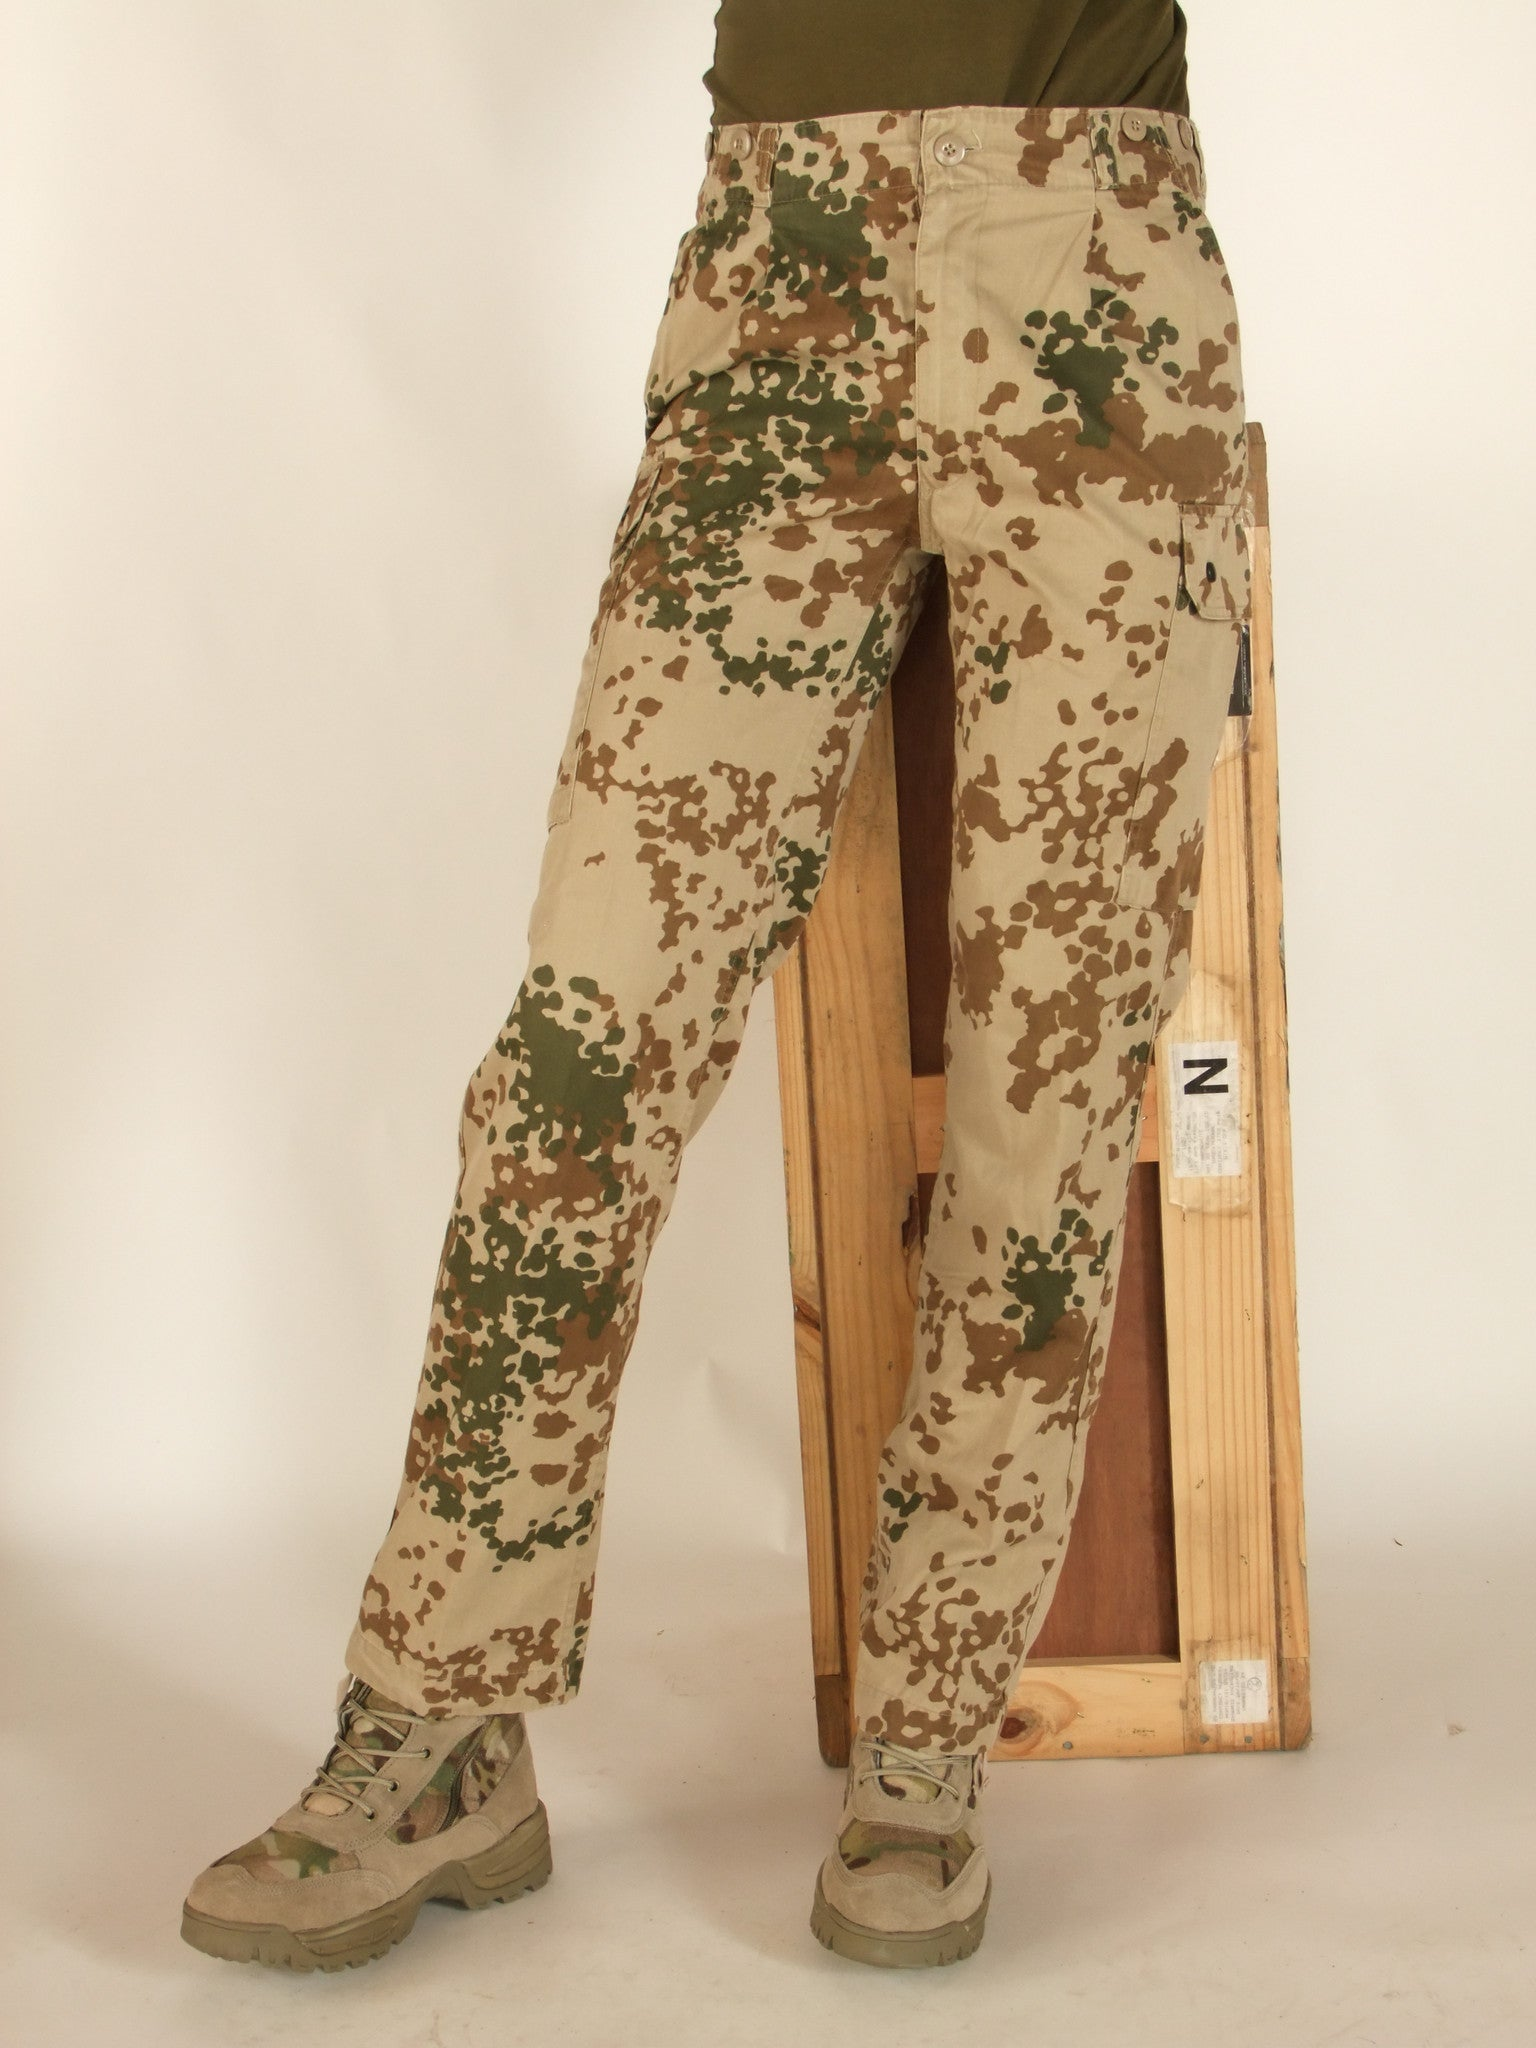 German tropentarn trousers